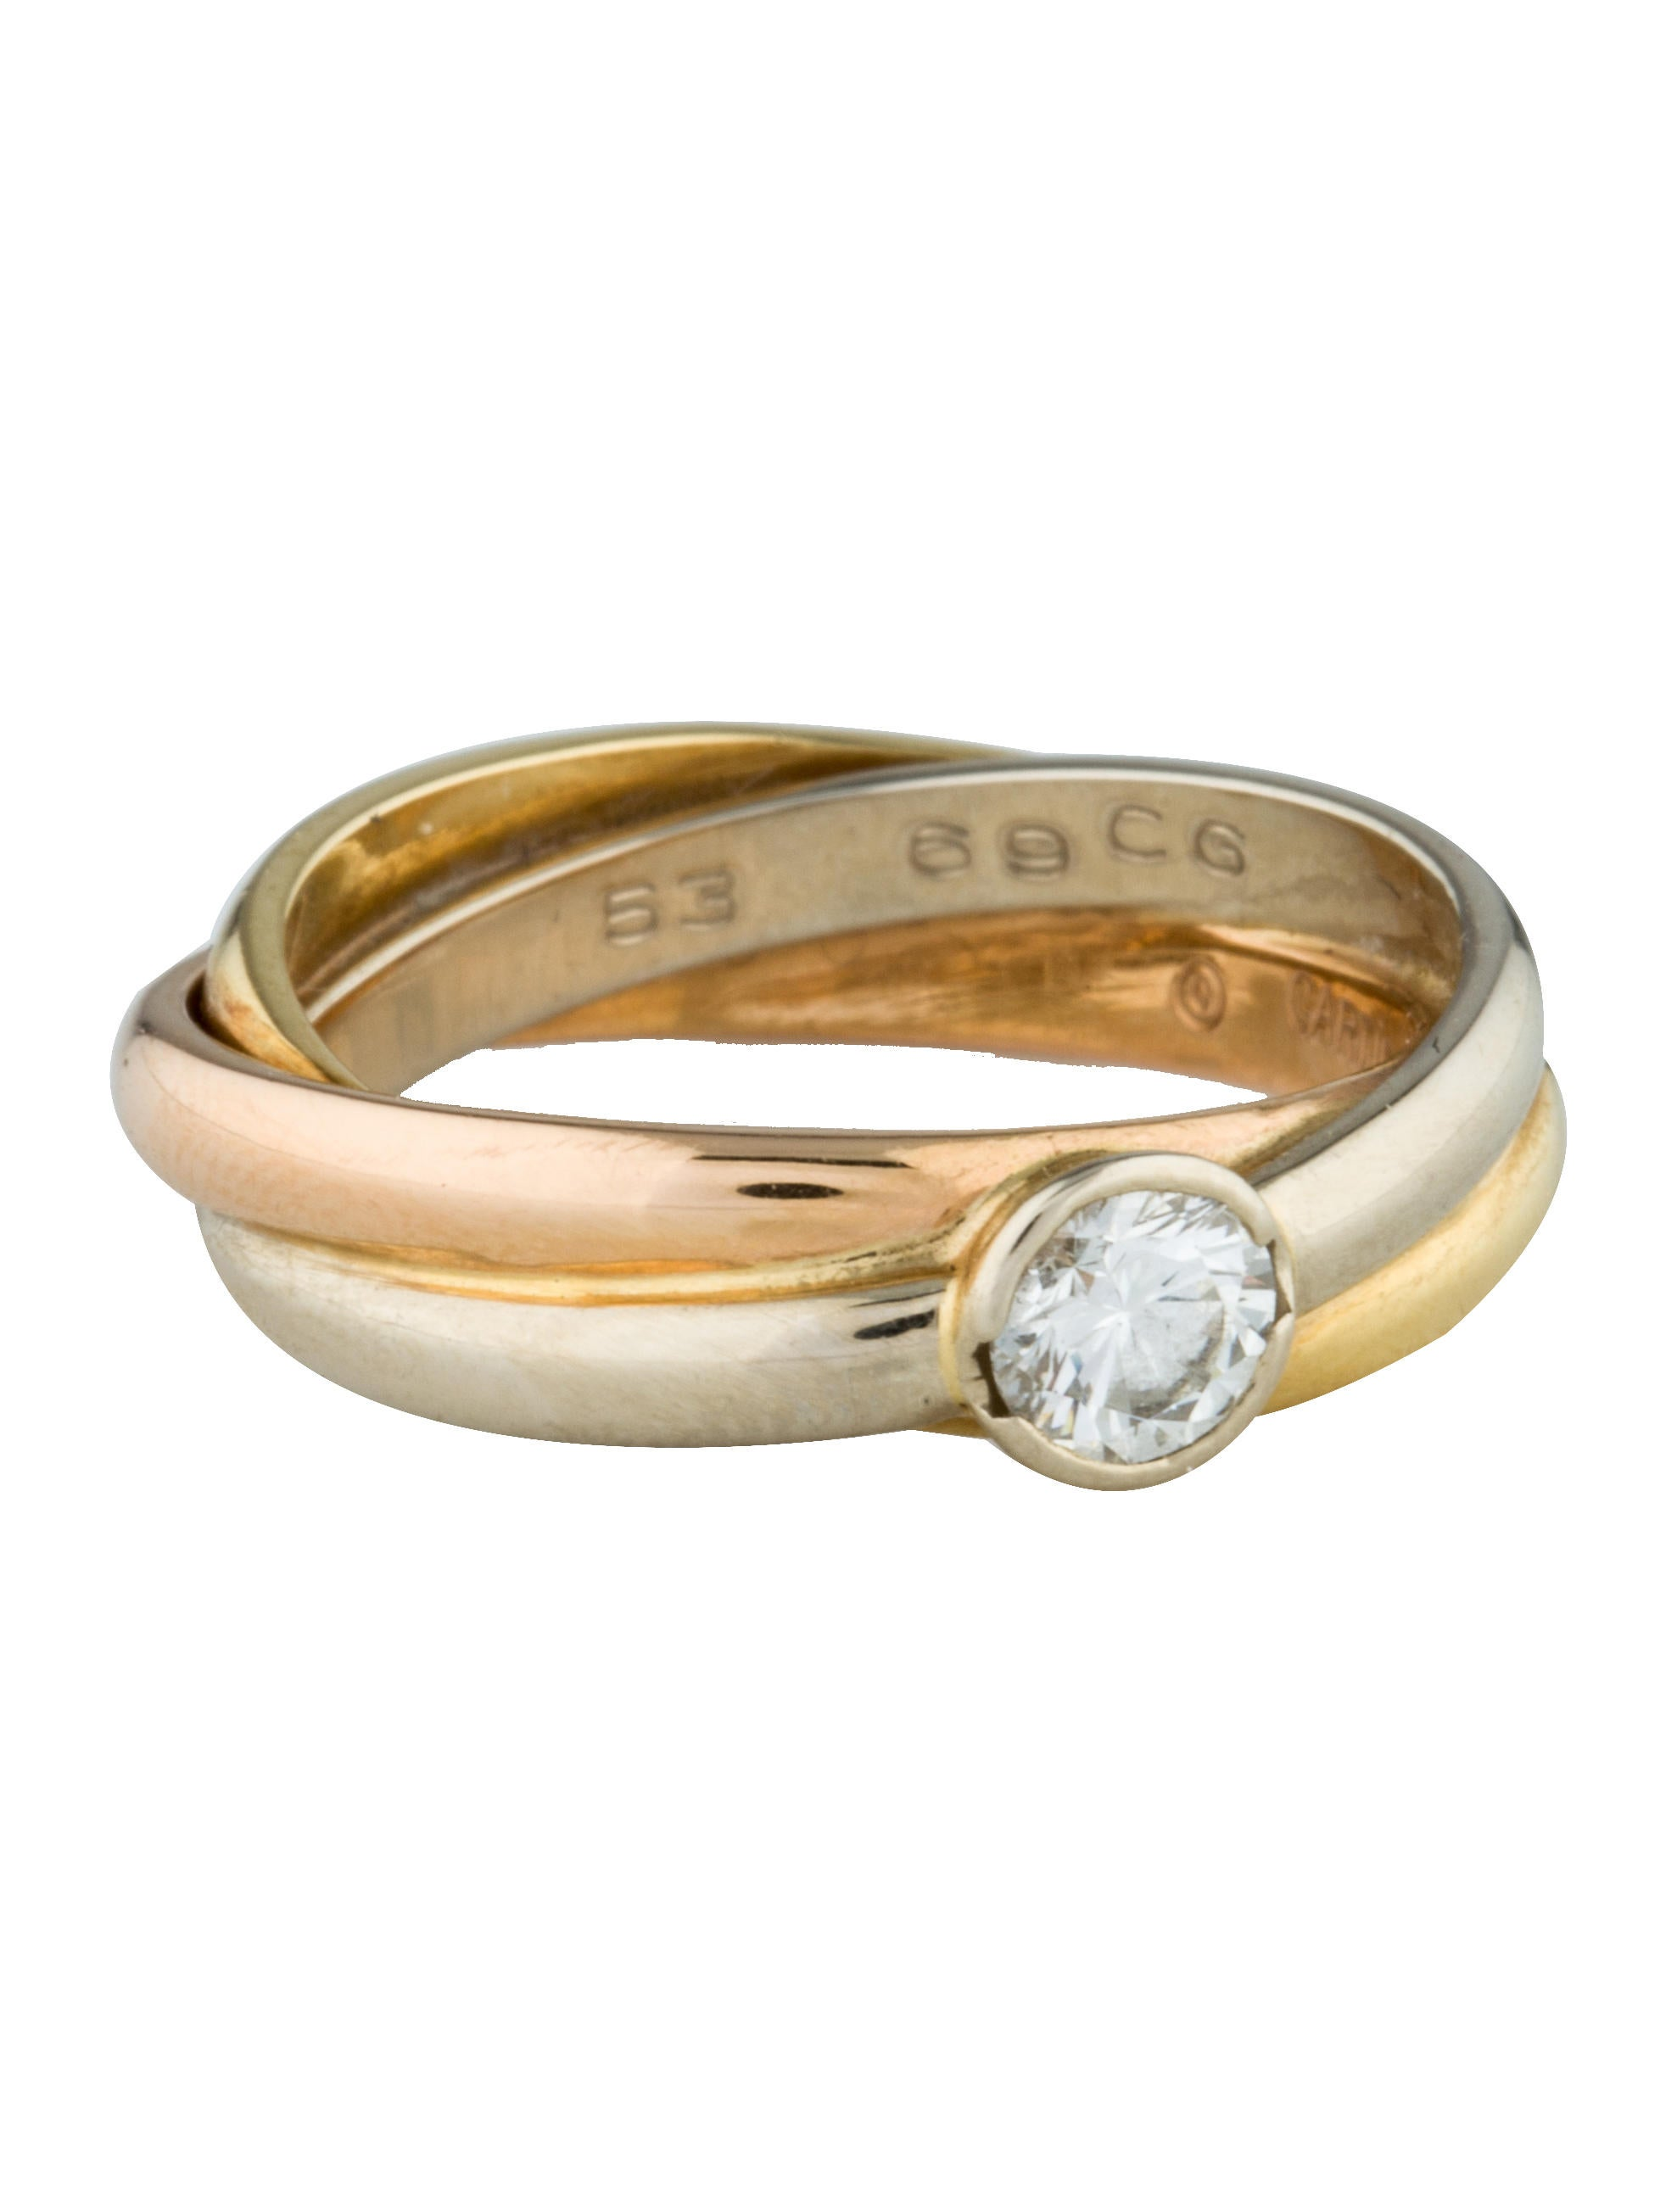 CARTIER TRINITY ENGAGEMENT RING PRICE